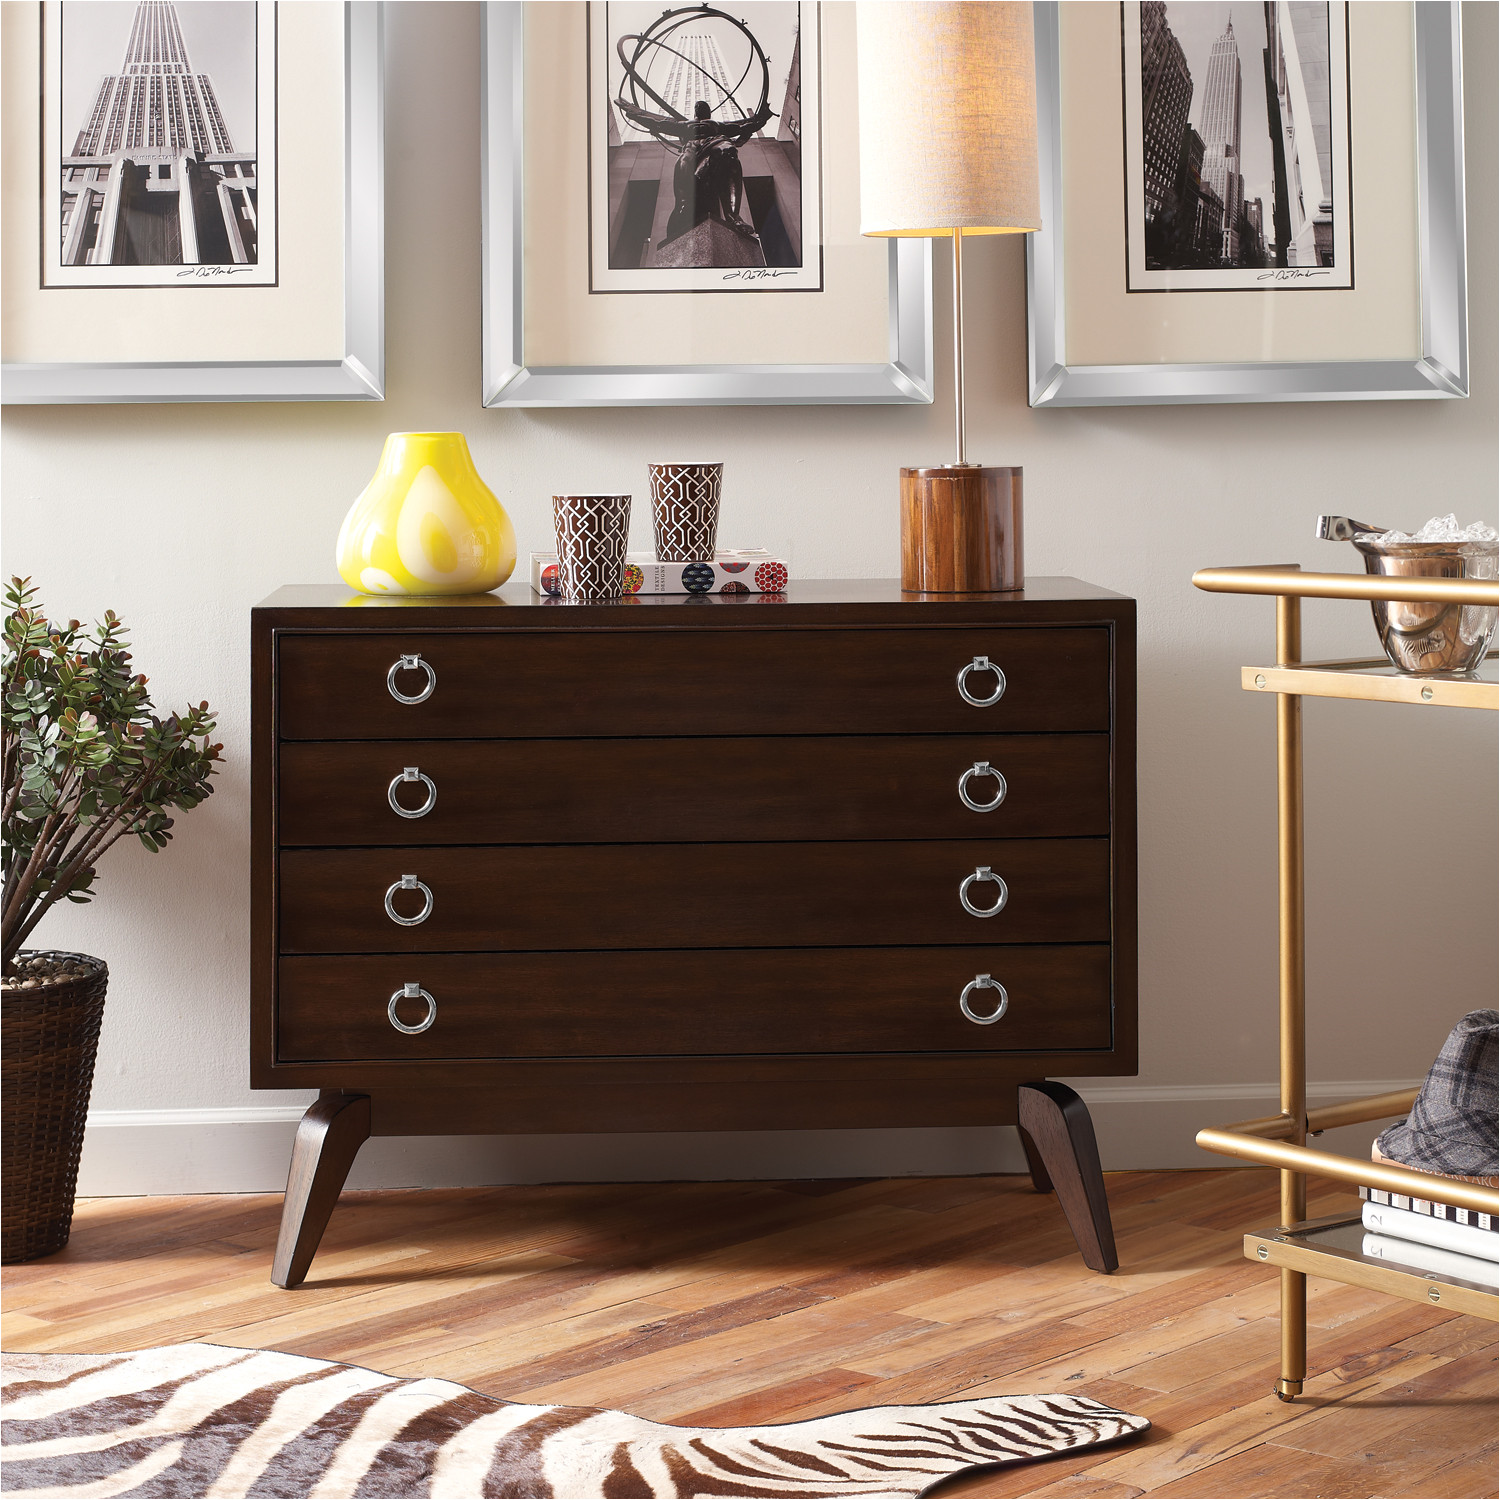 Drop Pulls for Dressers Contemporary with A Retro Feel the Omni Hall Chest Features A Deep